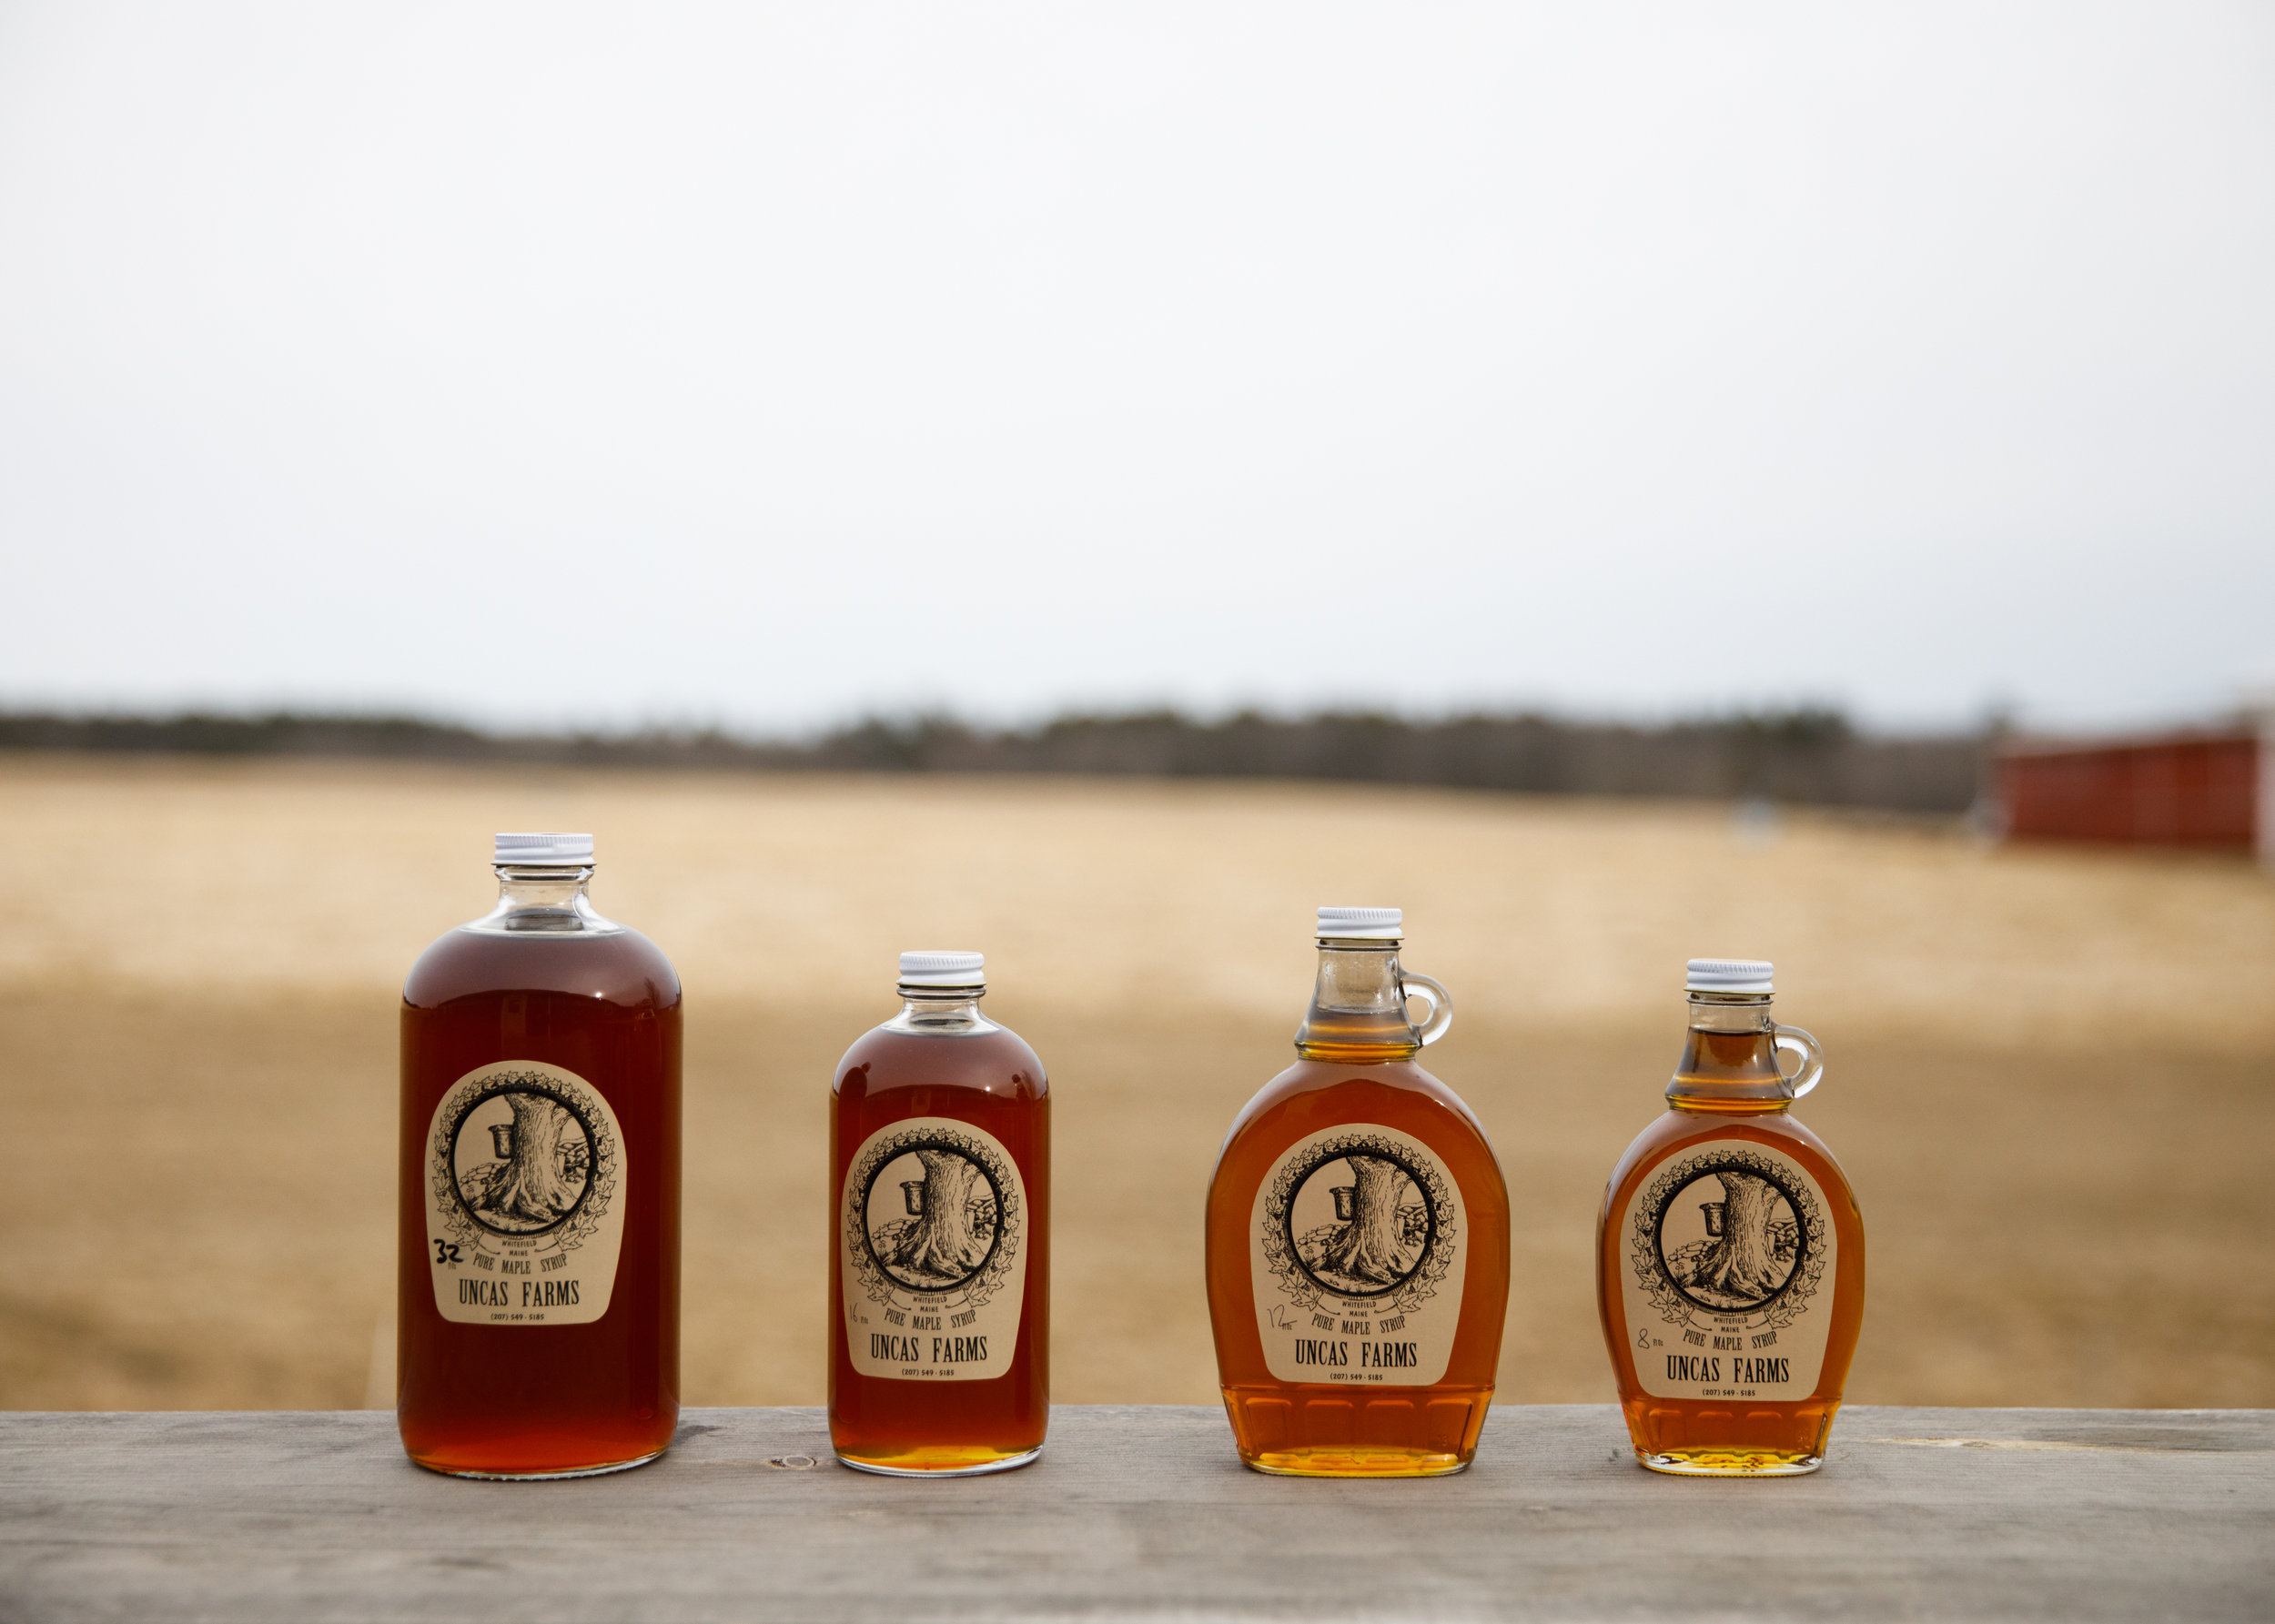 CSA members also get up to one quart of our own maple syrup